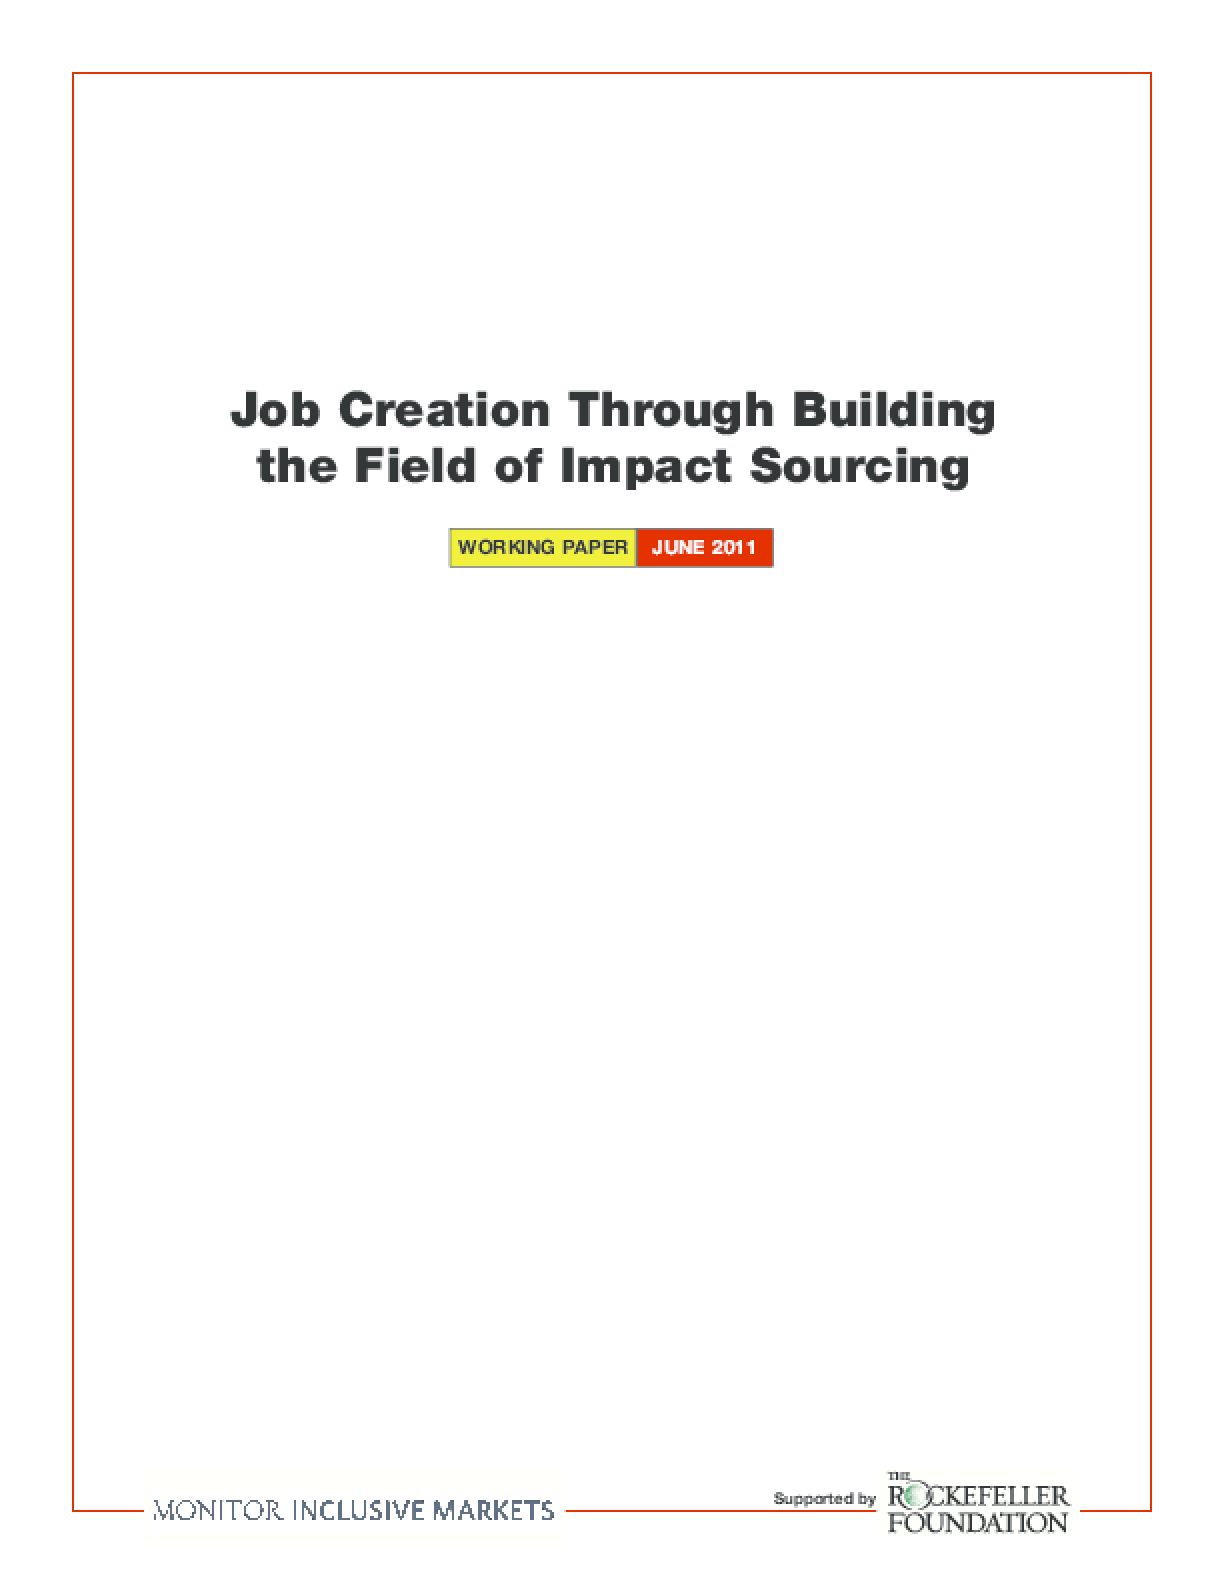 Job Creation Through Building the Field of Impact Sourcing